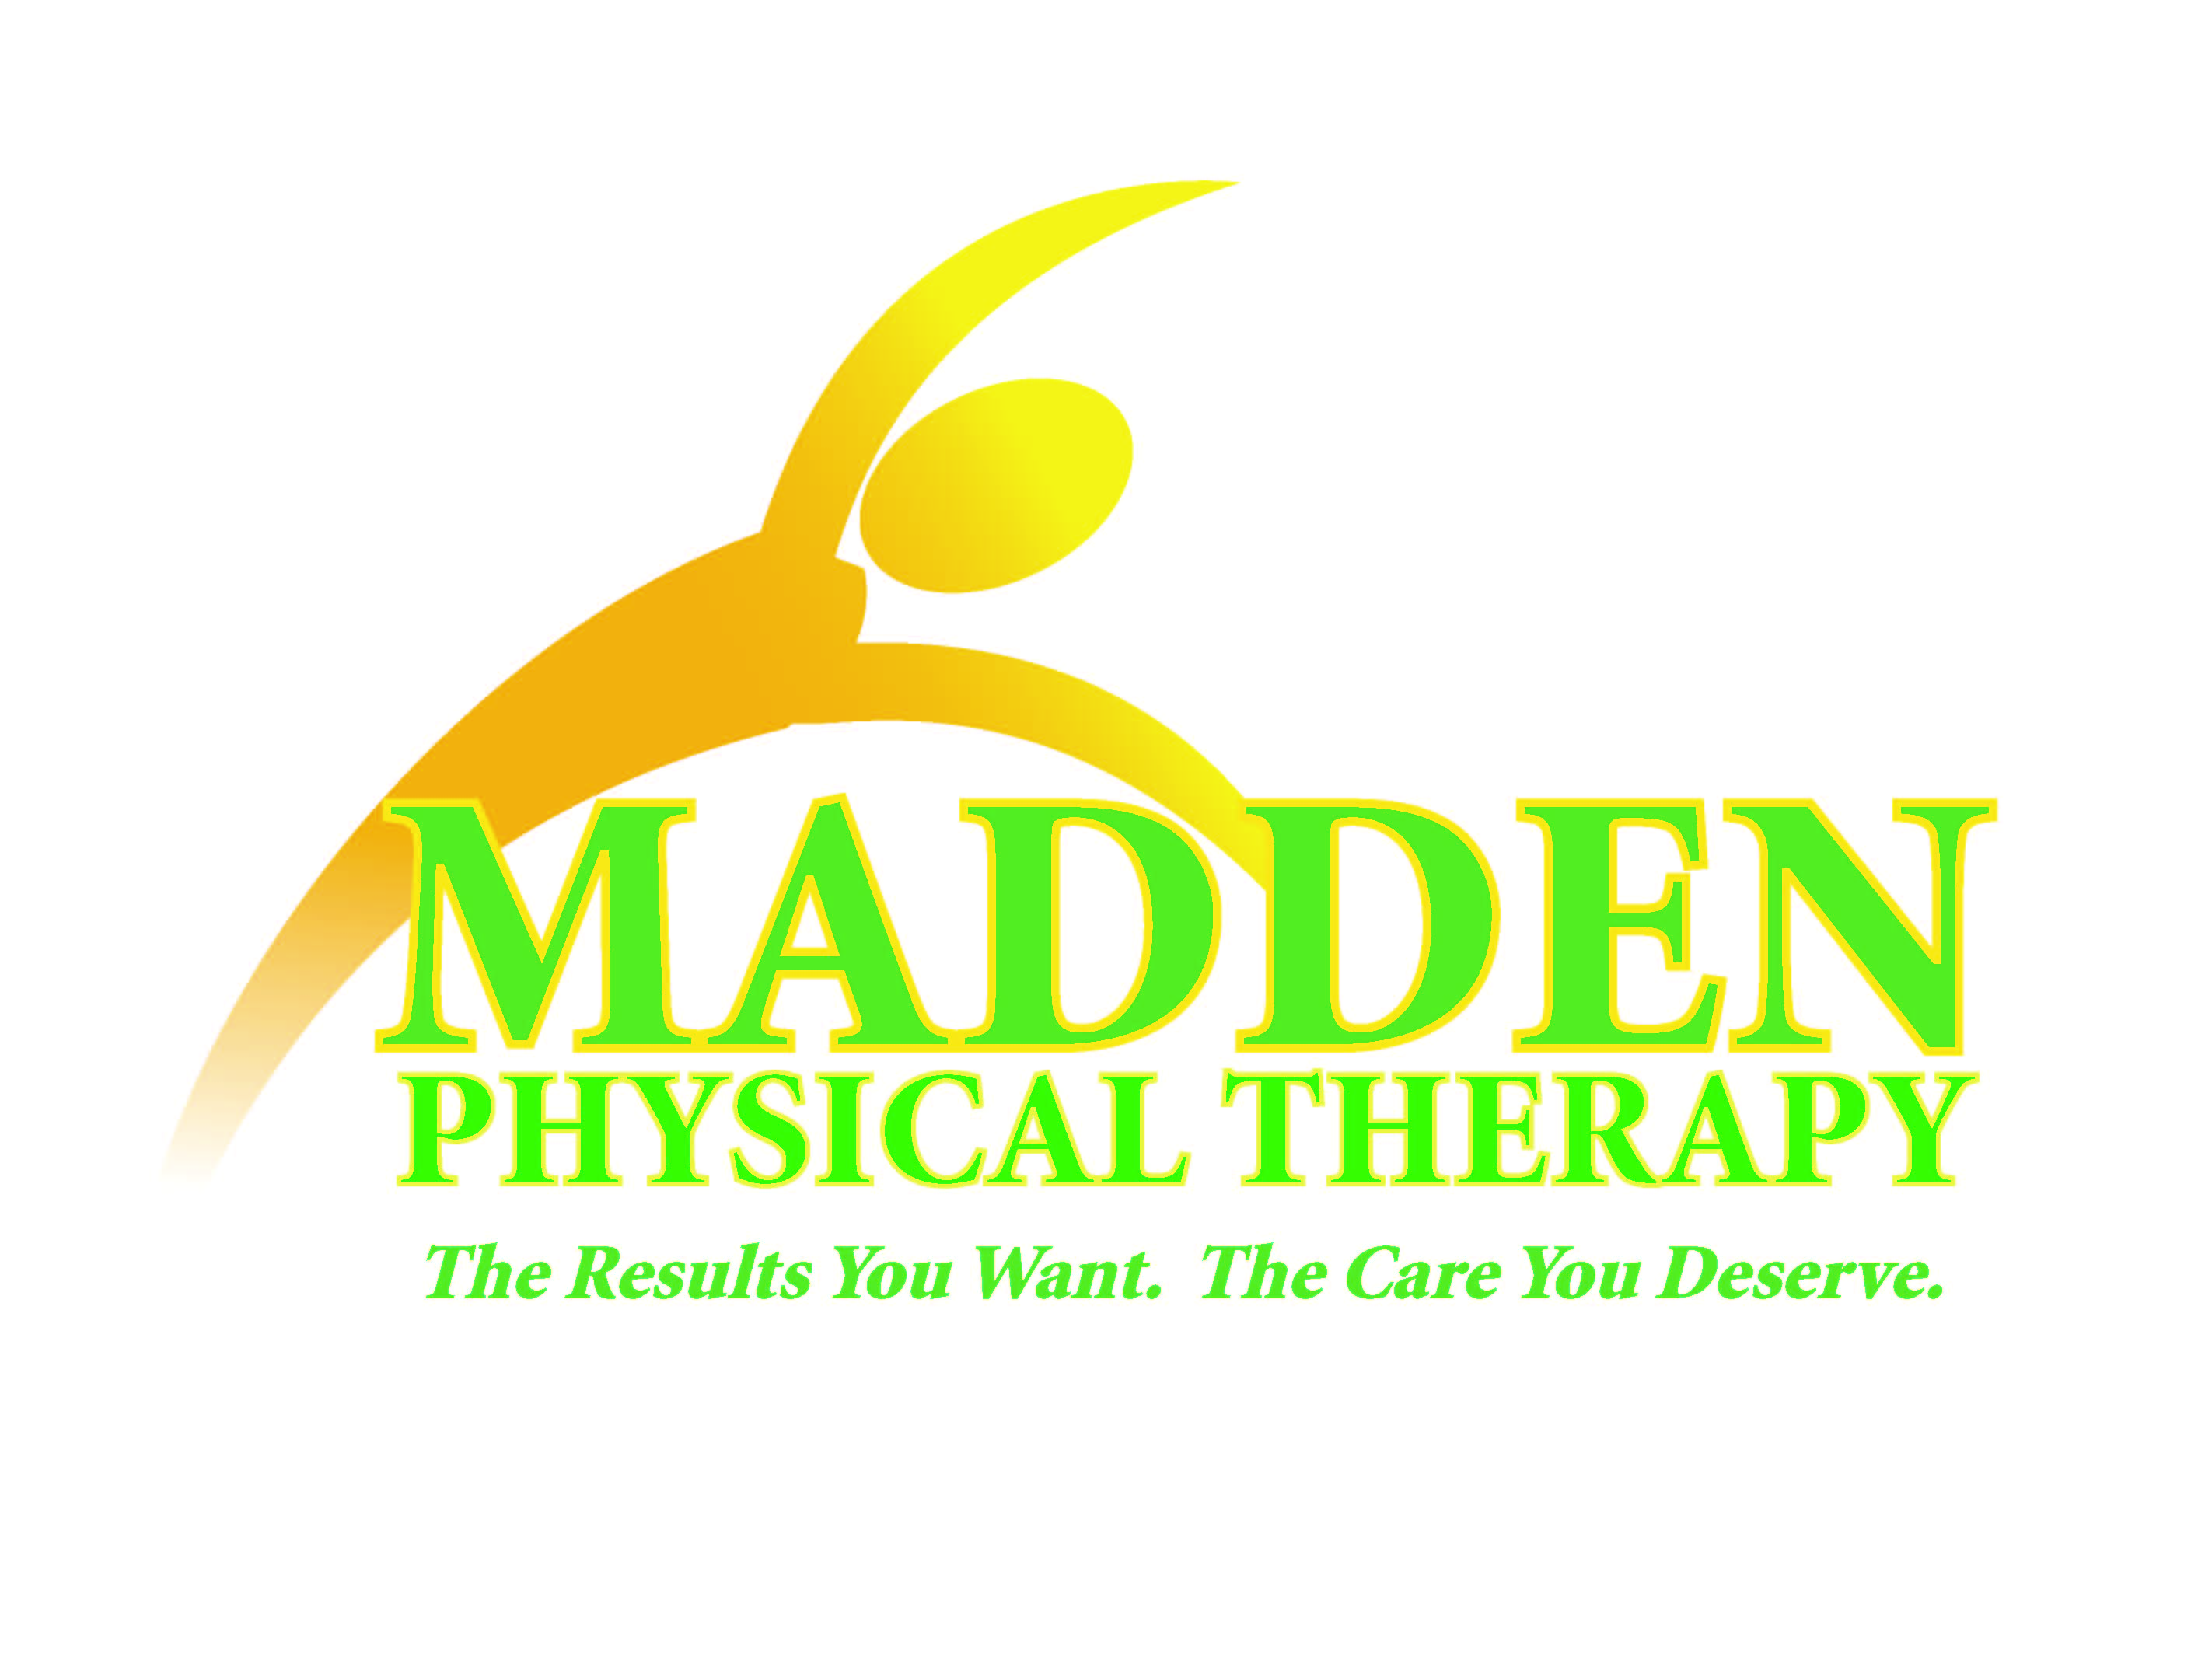 Madden Physcial Therapy - Dauphin